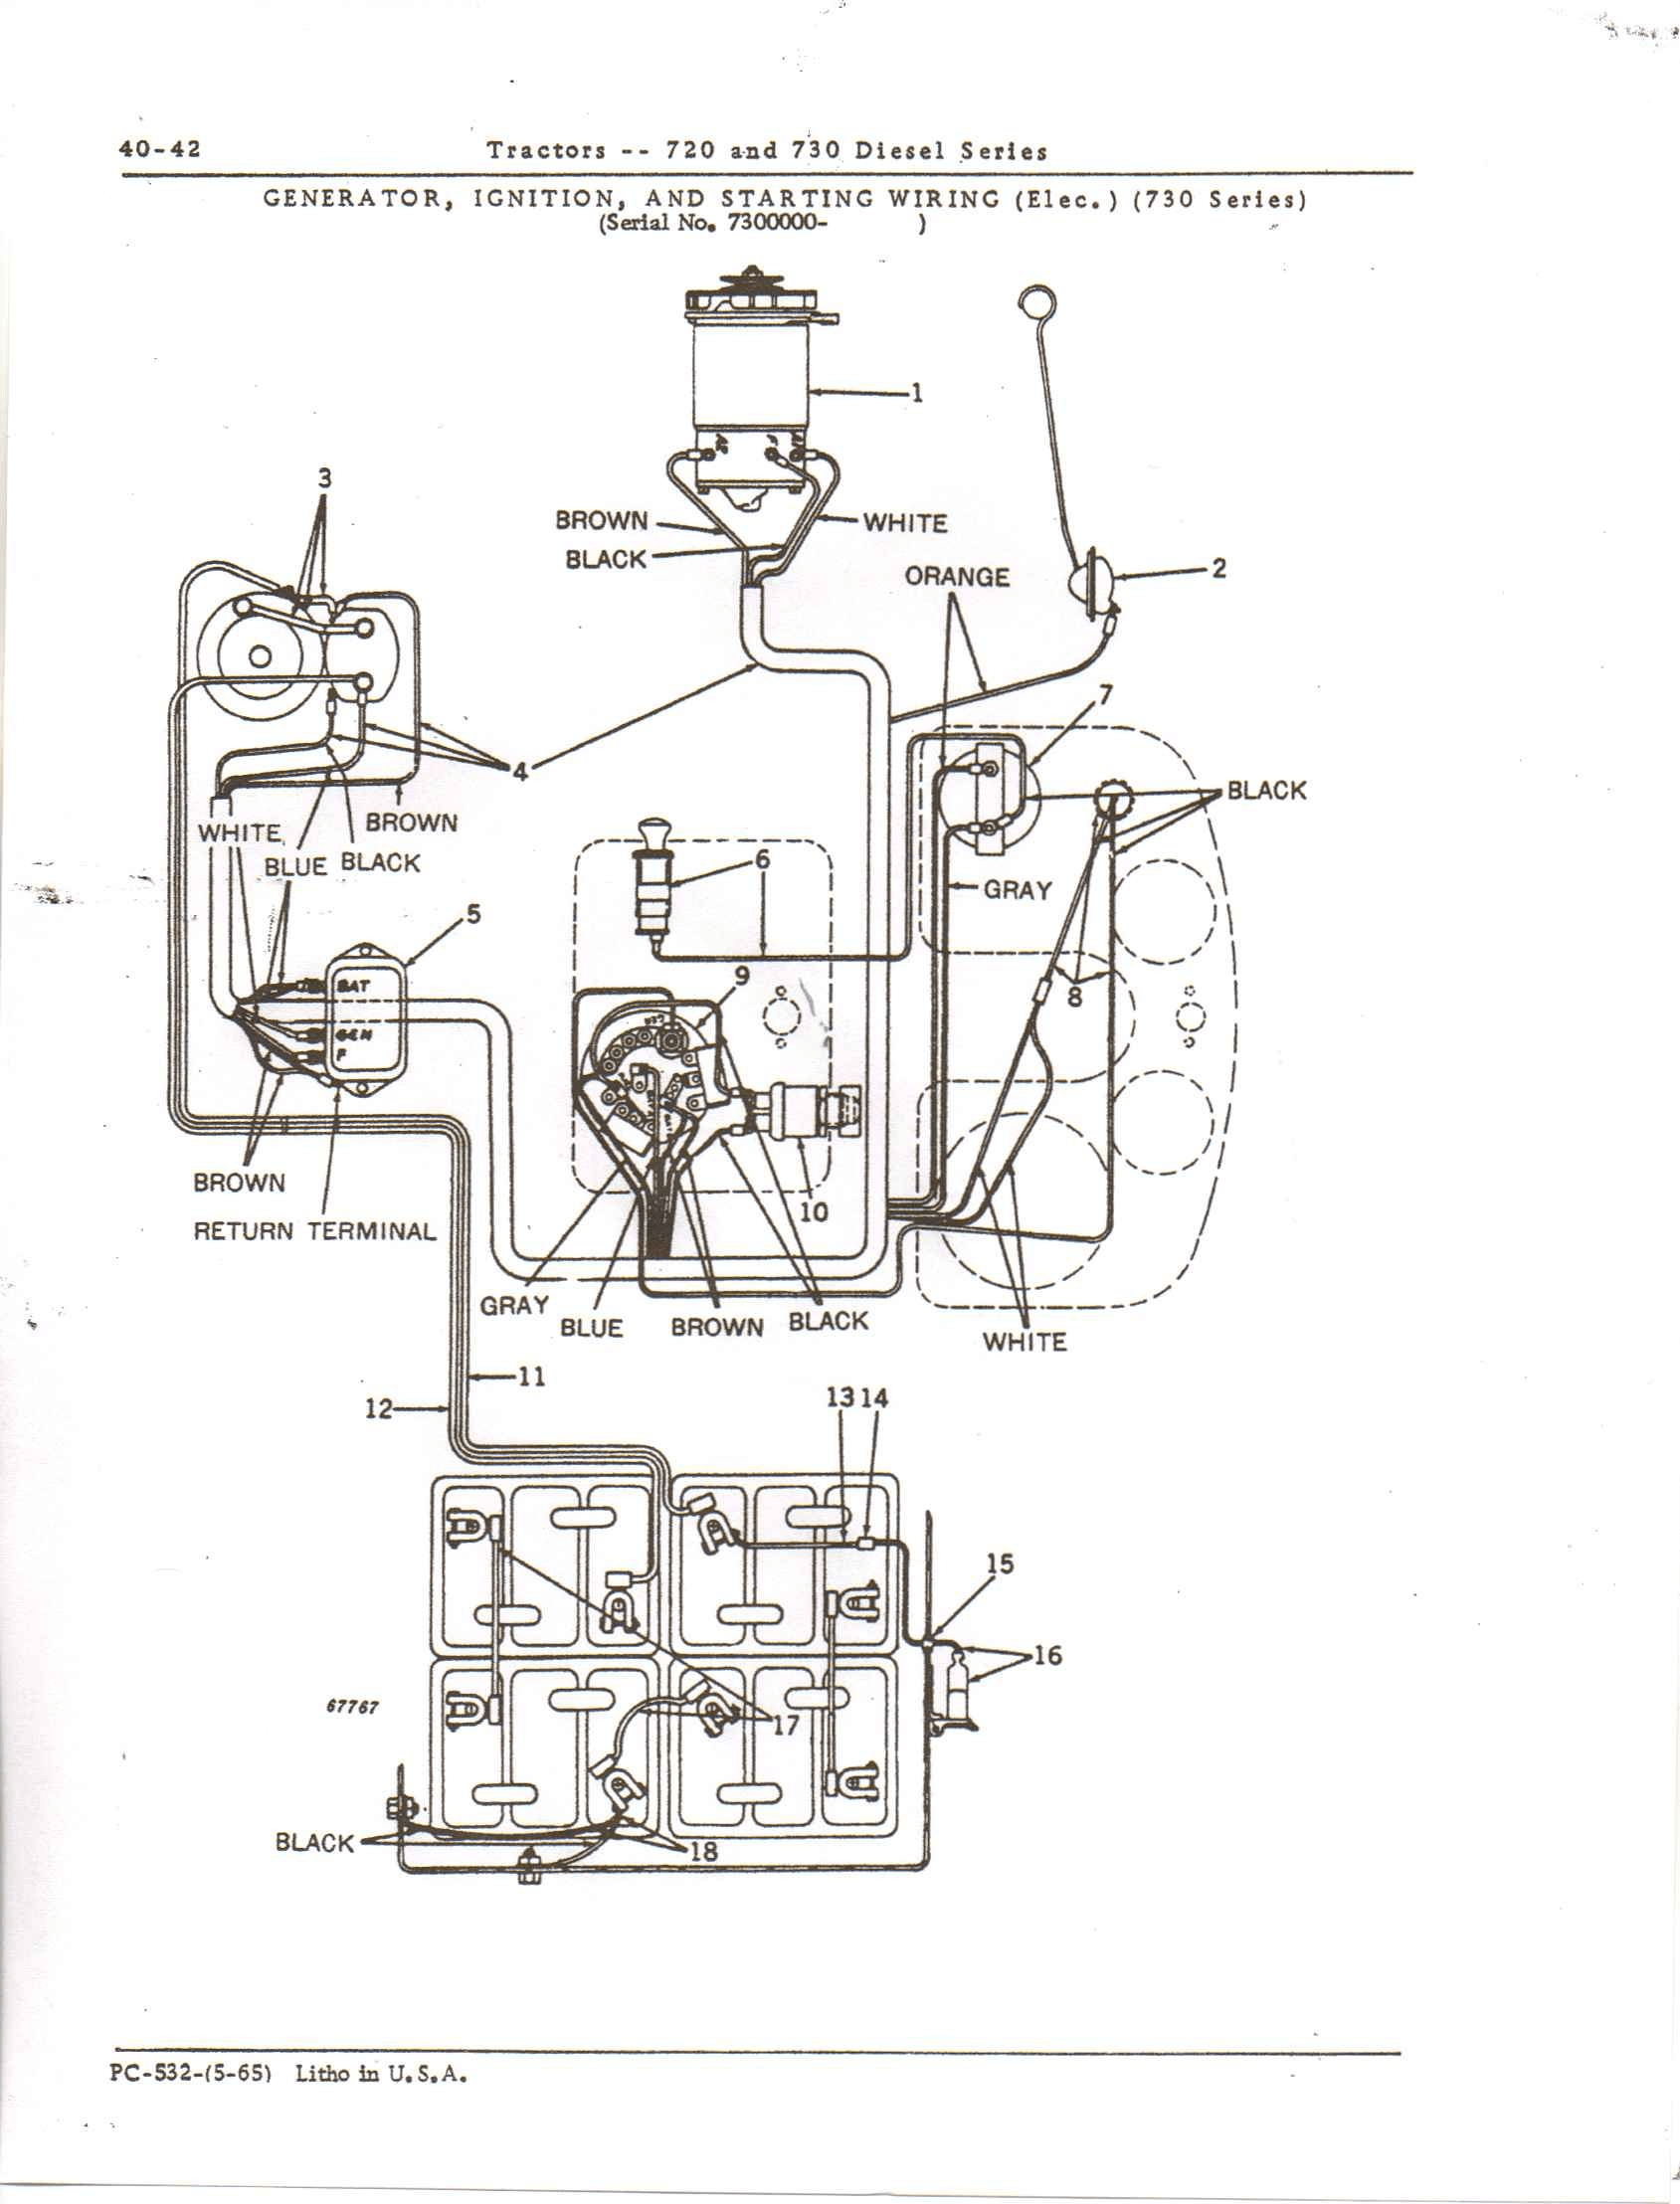 hight resolution of john deere 2755 tractor wiring diagram wiring schematic diagram john deere 2755 tractor wiring diagram wiring